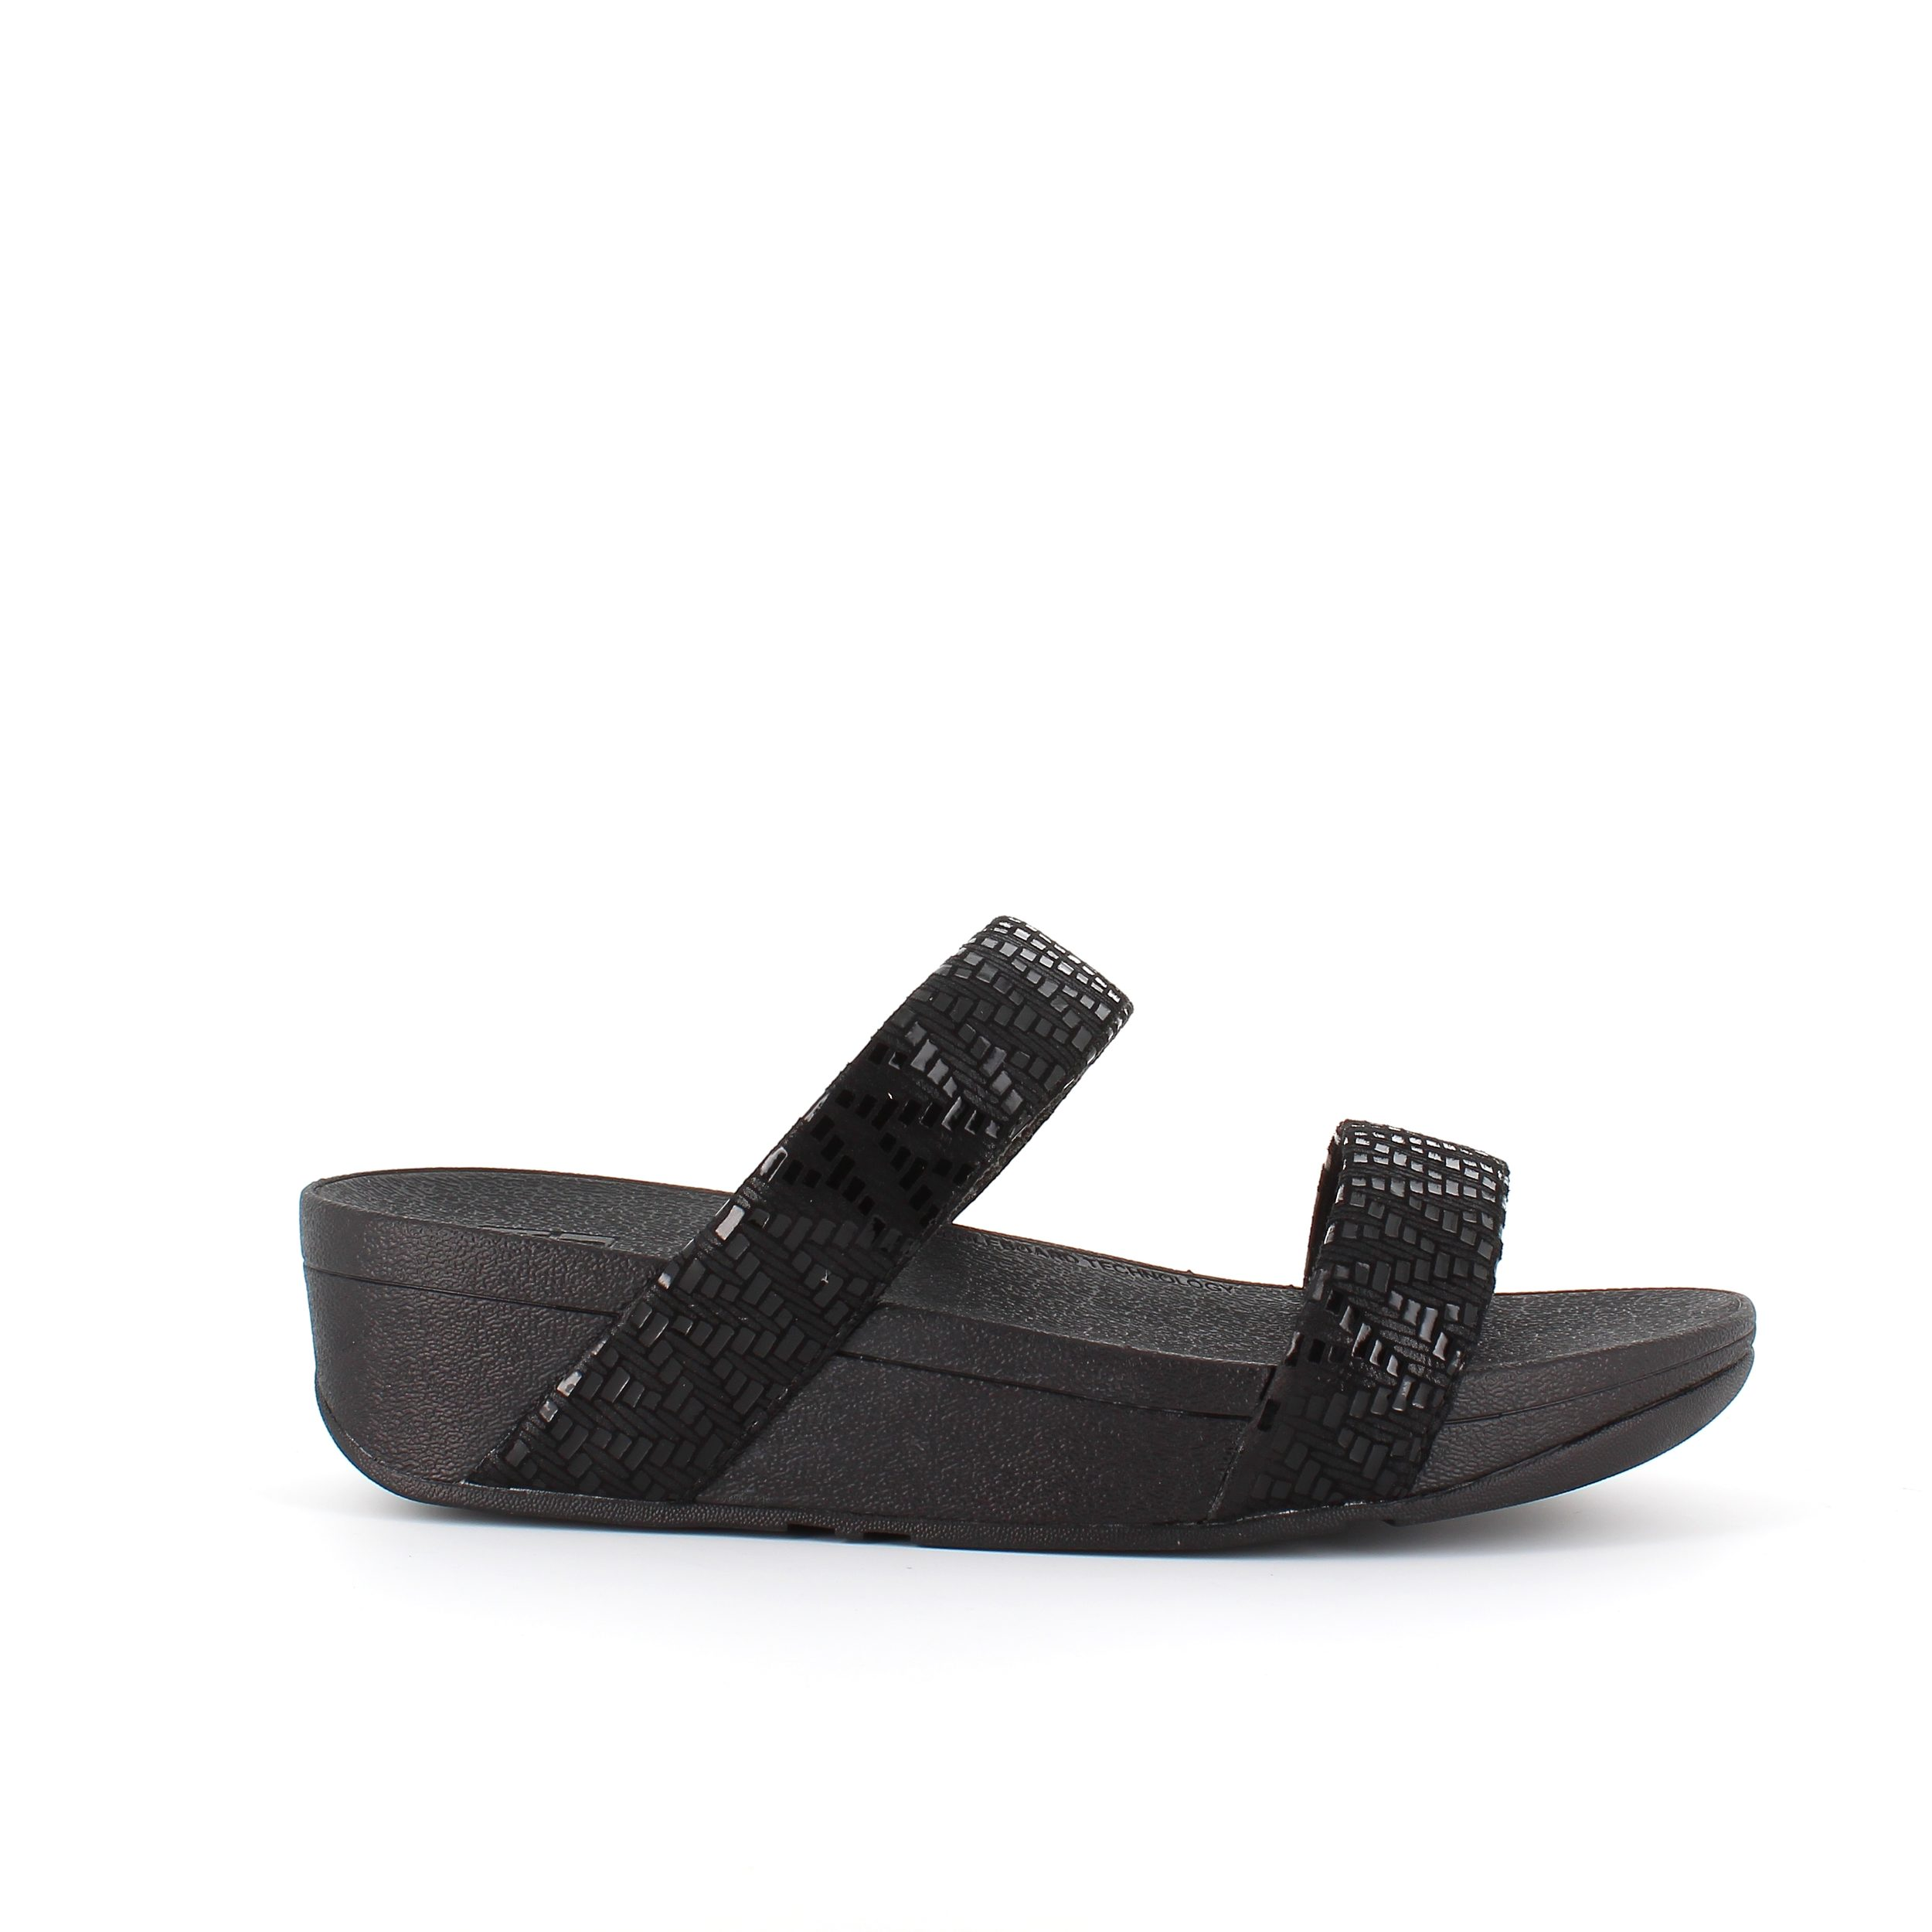 Image of   Lottie Chevron slip in sandal fra Fitflop - 36